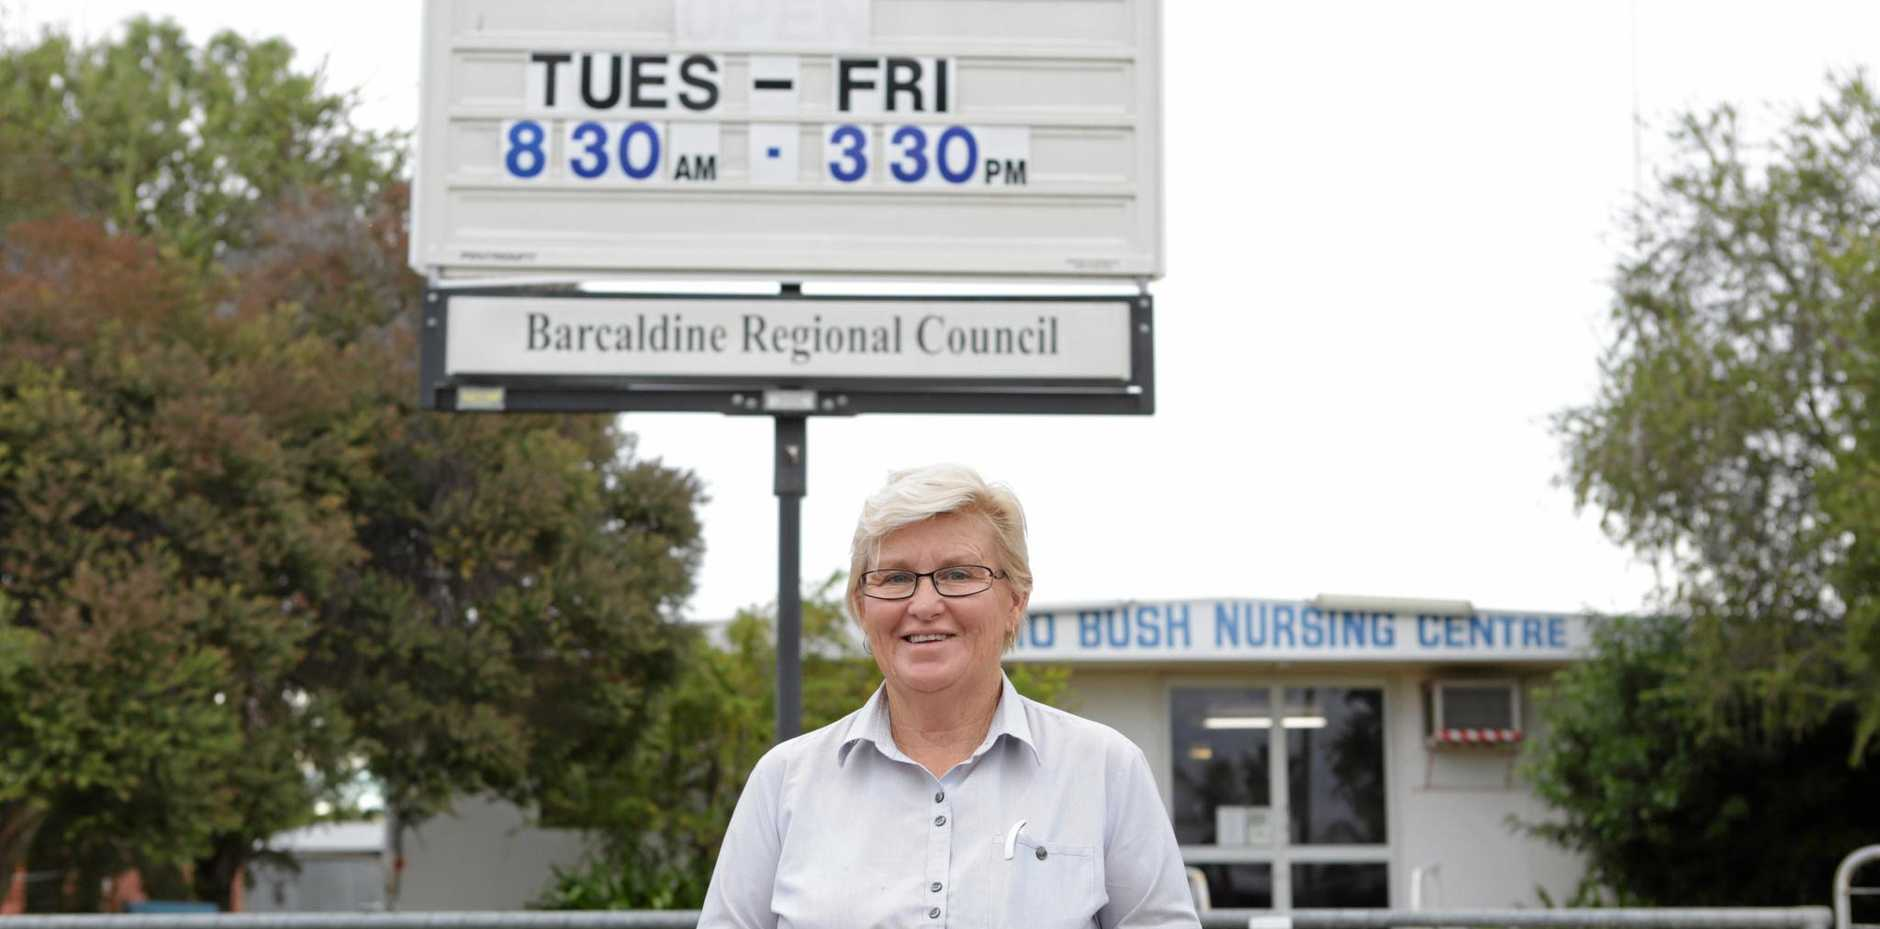 HELPING HAND: Jericho Health Clinic nurse Leslie Delandell has been awarded an RFDS Local Hero award for her long-standing efforts within the Jericho community.